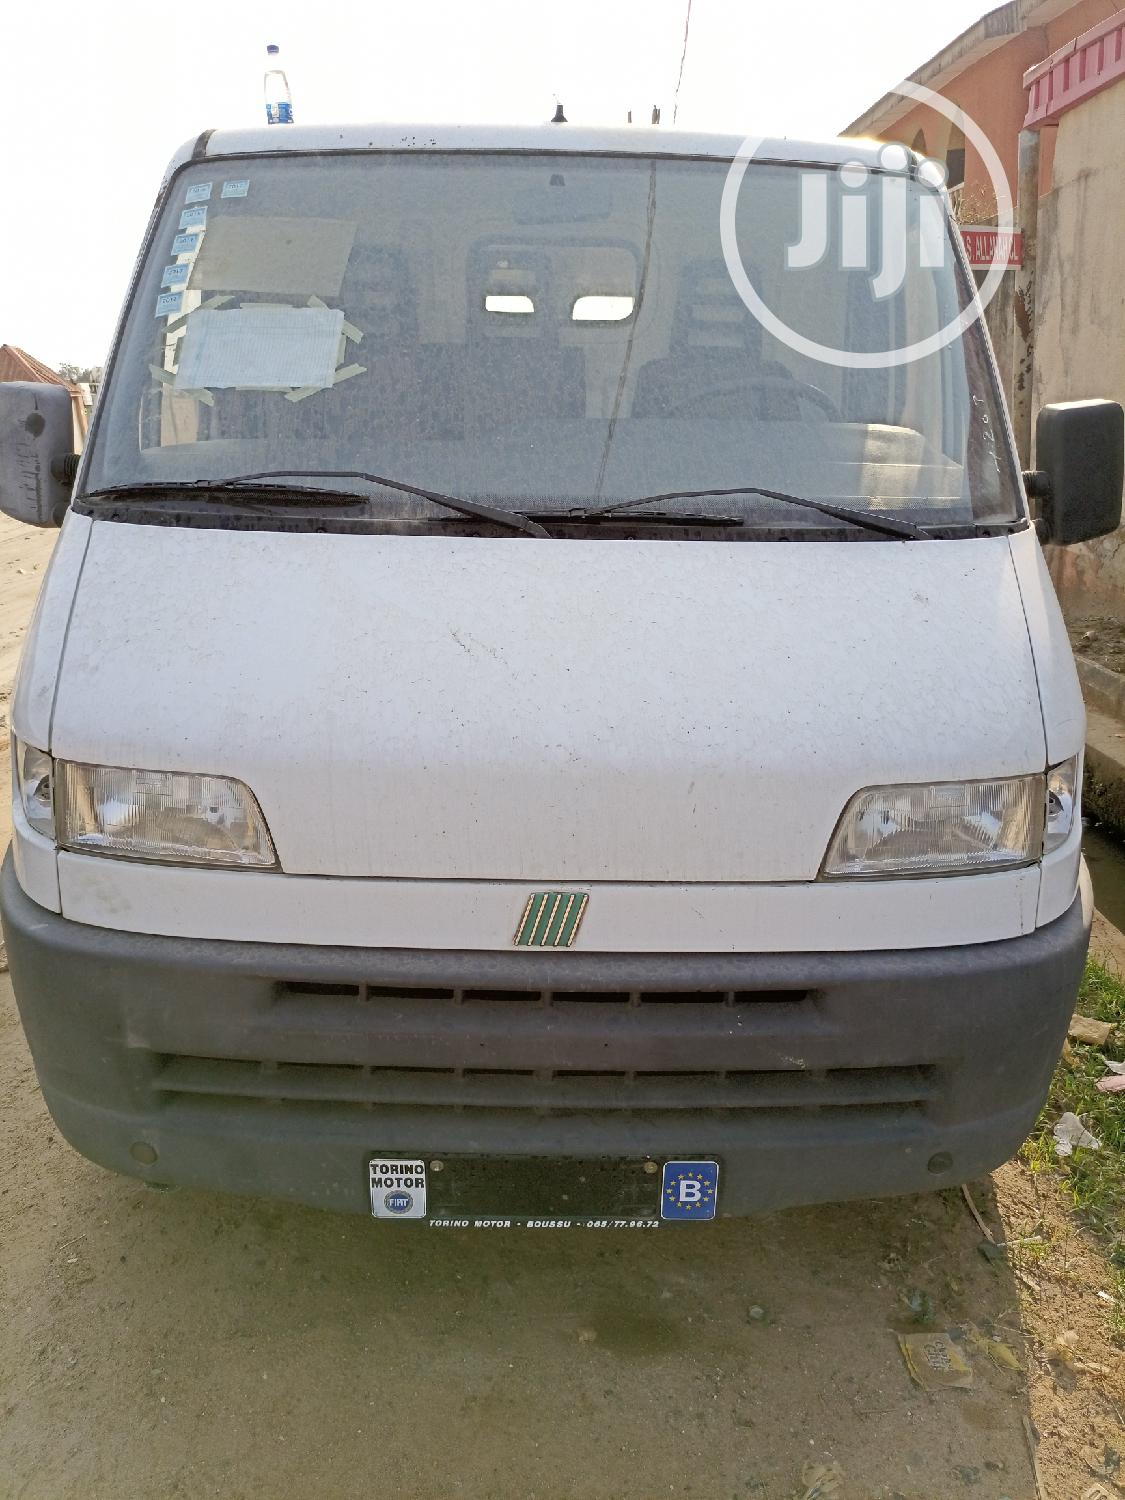 Super Clean Foreign Used Fiat Ducato Van 2003 White | Buses & Microbuses for sale in Amuwo-Odofin, Lagos State, Nigeria